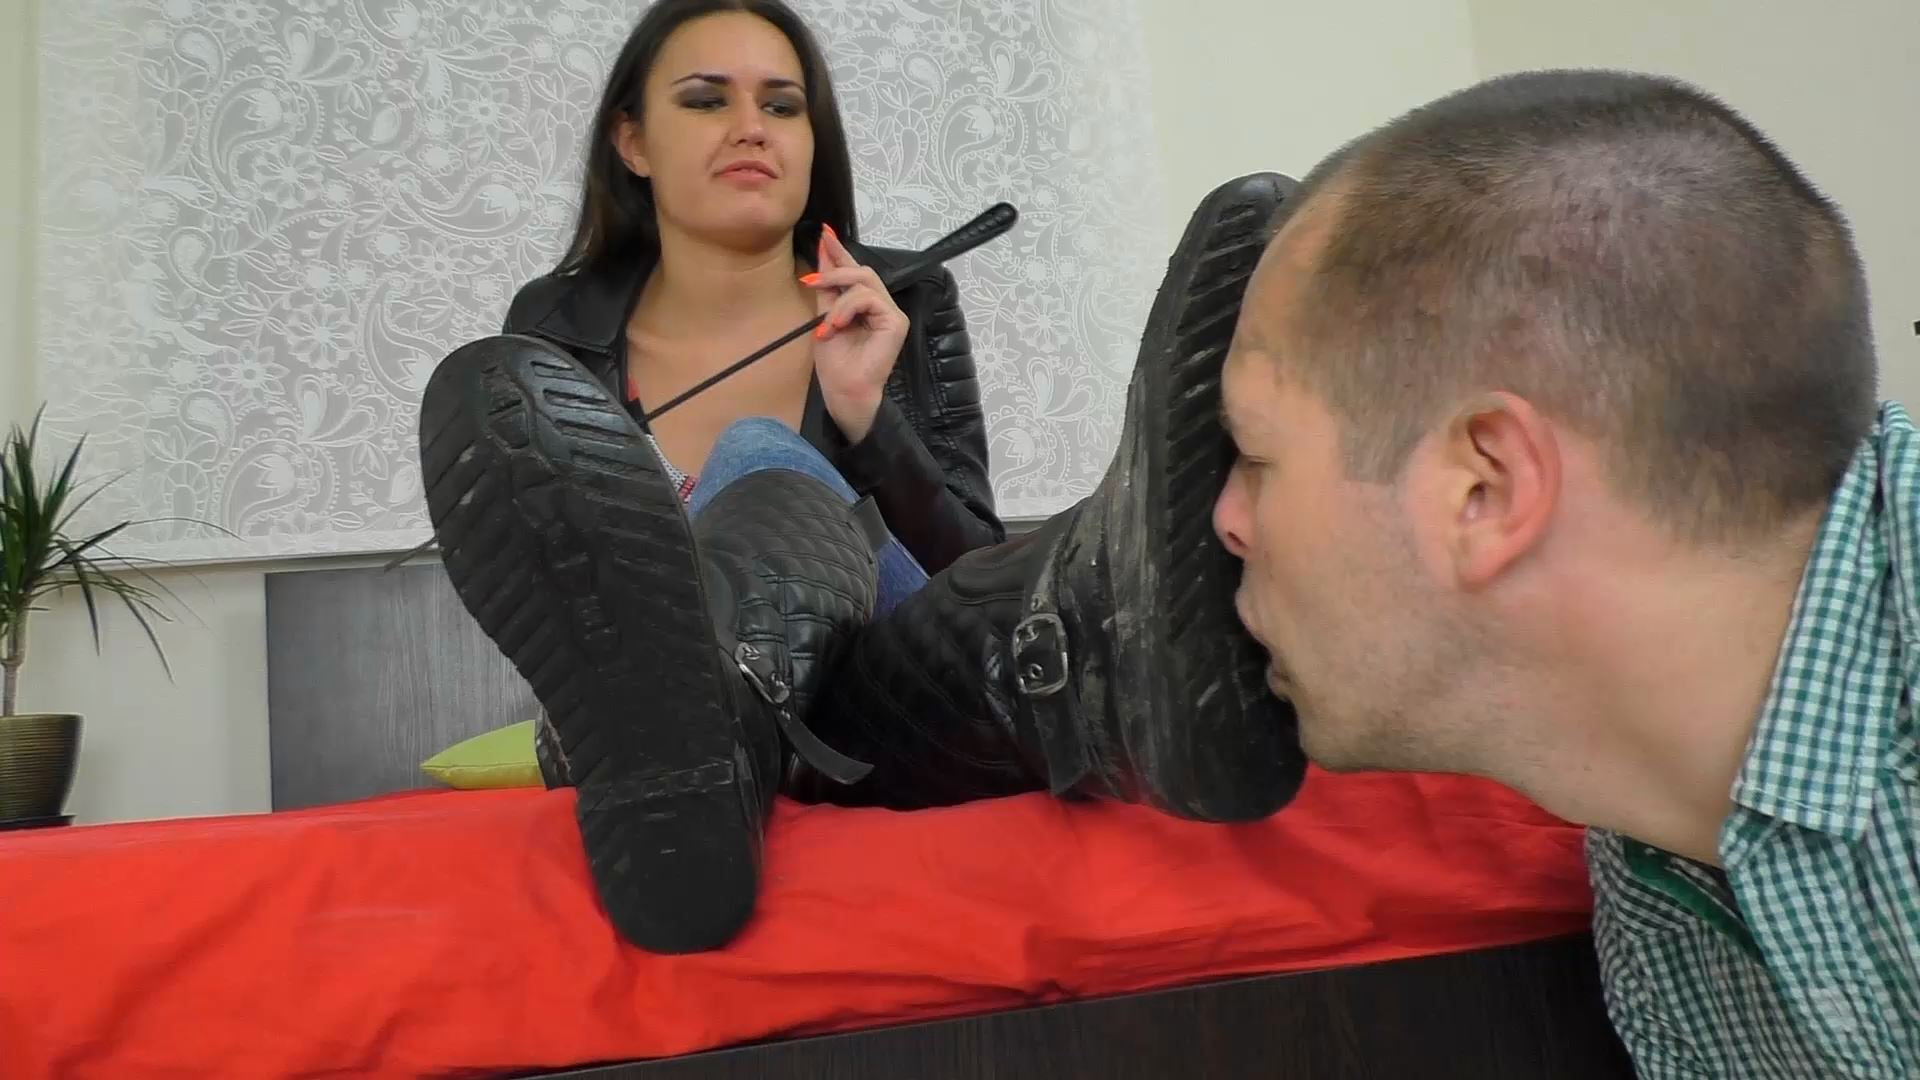 You Must Eat This Dirt - UNDER SWEET WEIGHT / CLIPS4SALE - FULL HD/1080p/MP4